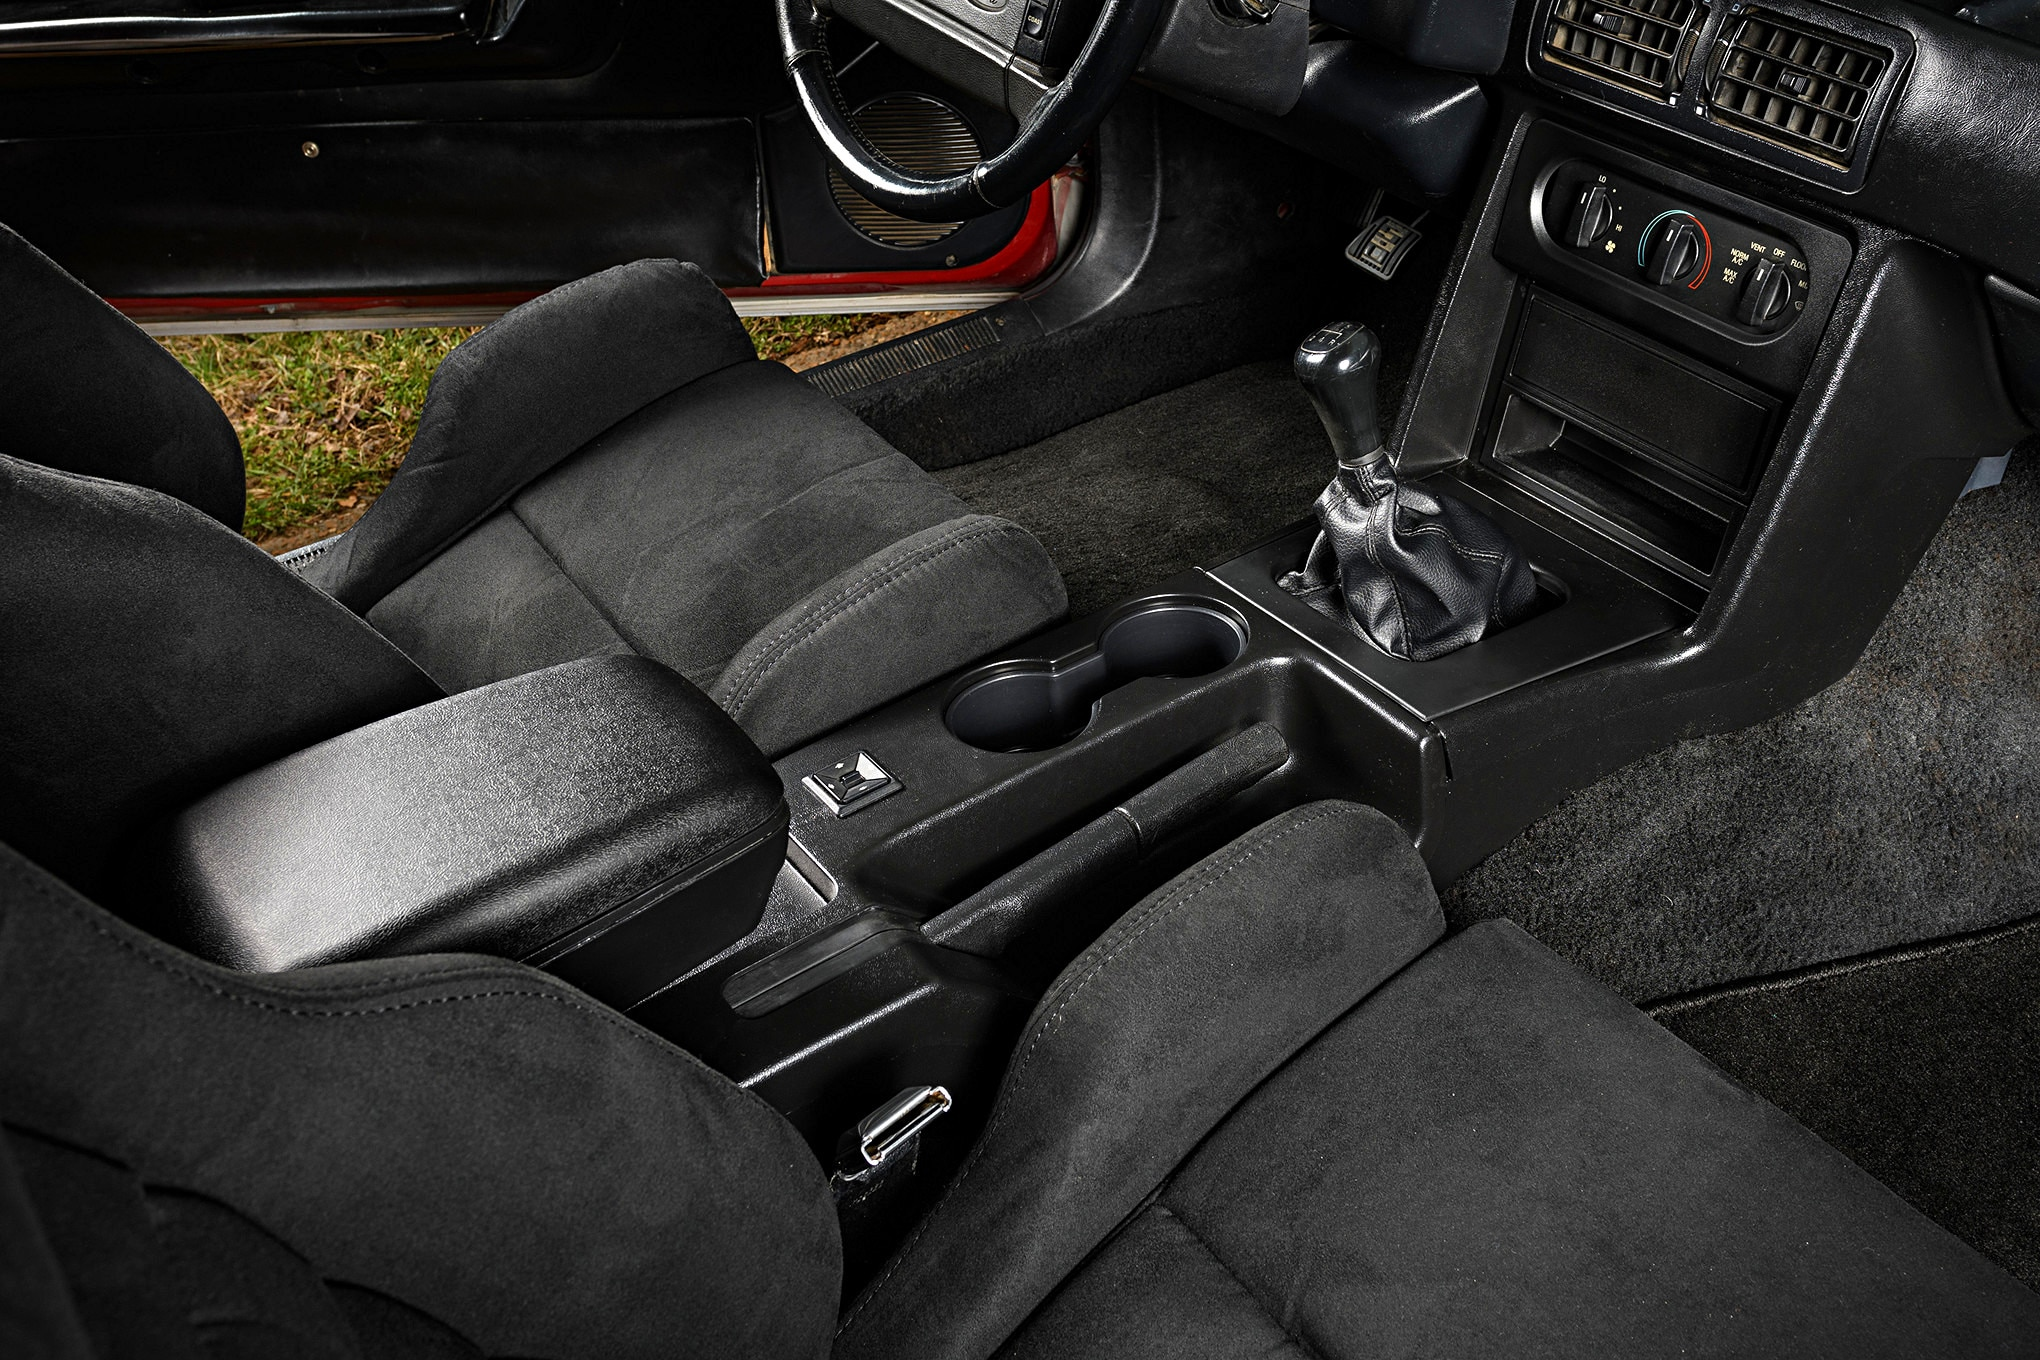 001 Mustang Center Console Lmr Restored